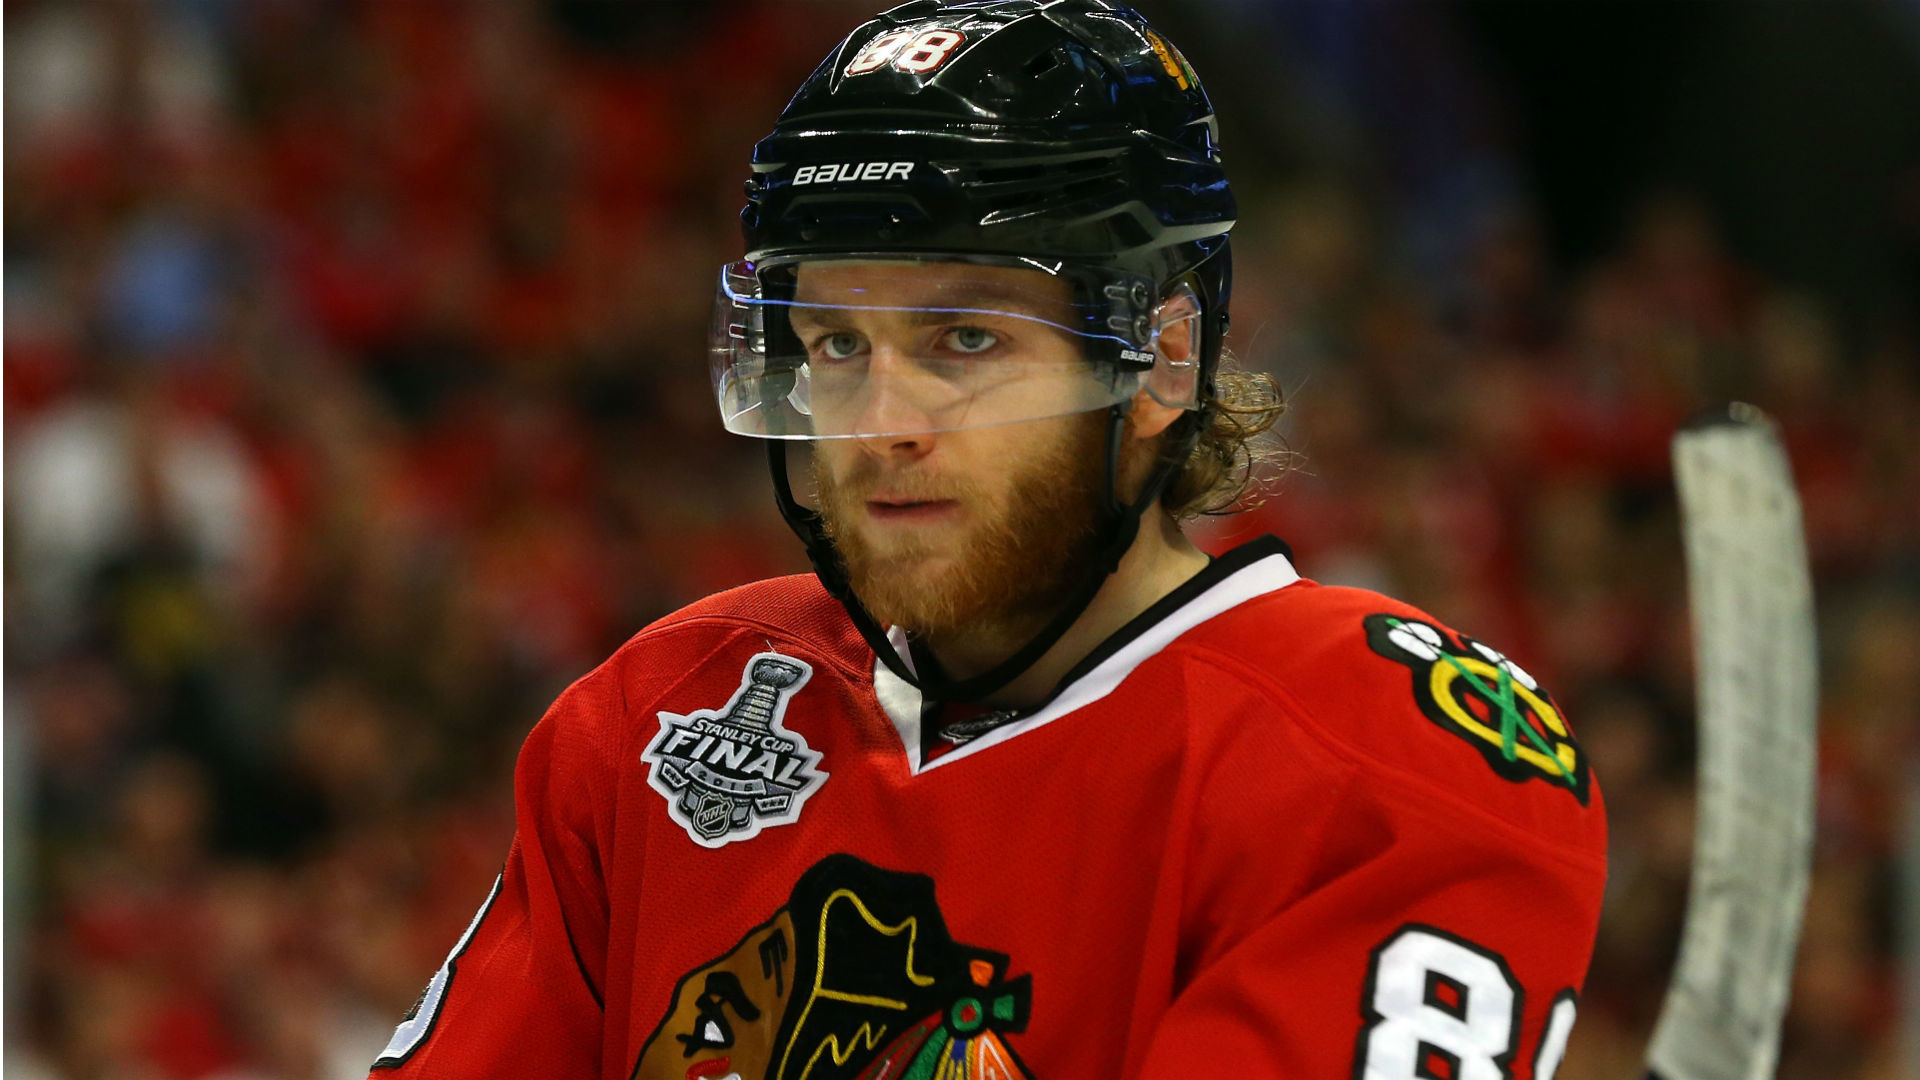 1920x1080 Patrick Kane greeted with applause in Blackhawks' preseason opener | NHL |  Sporting News